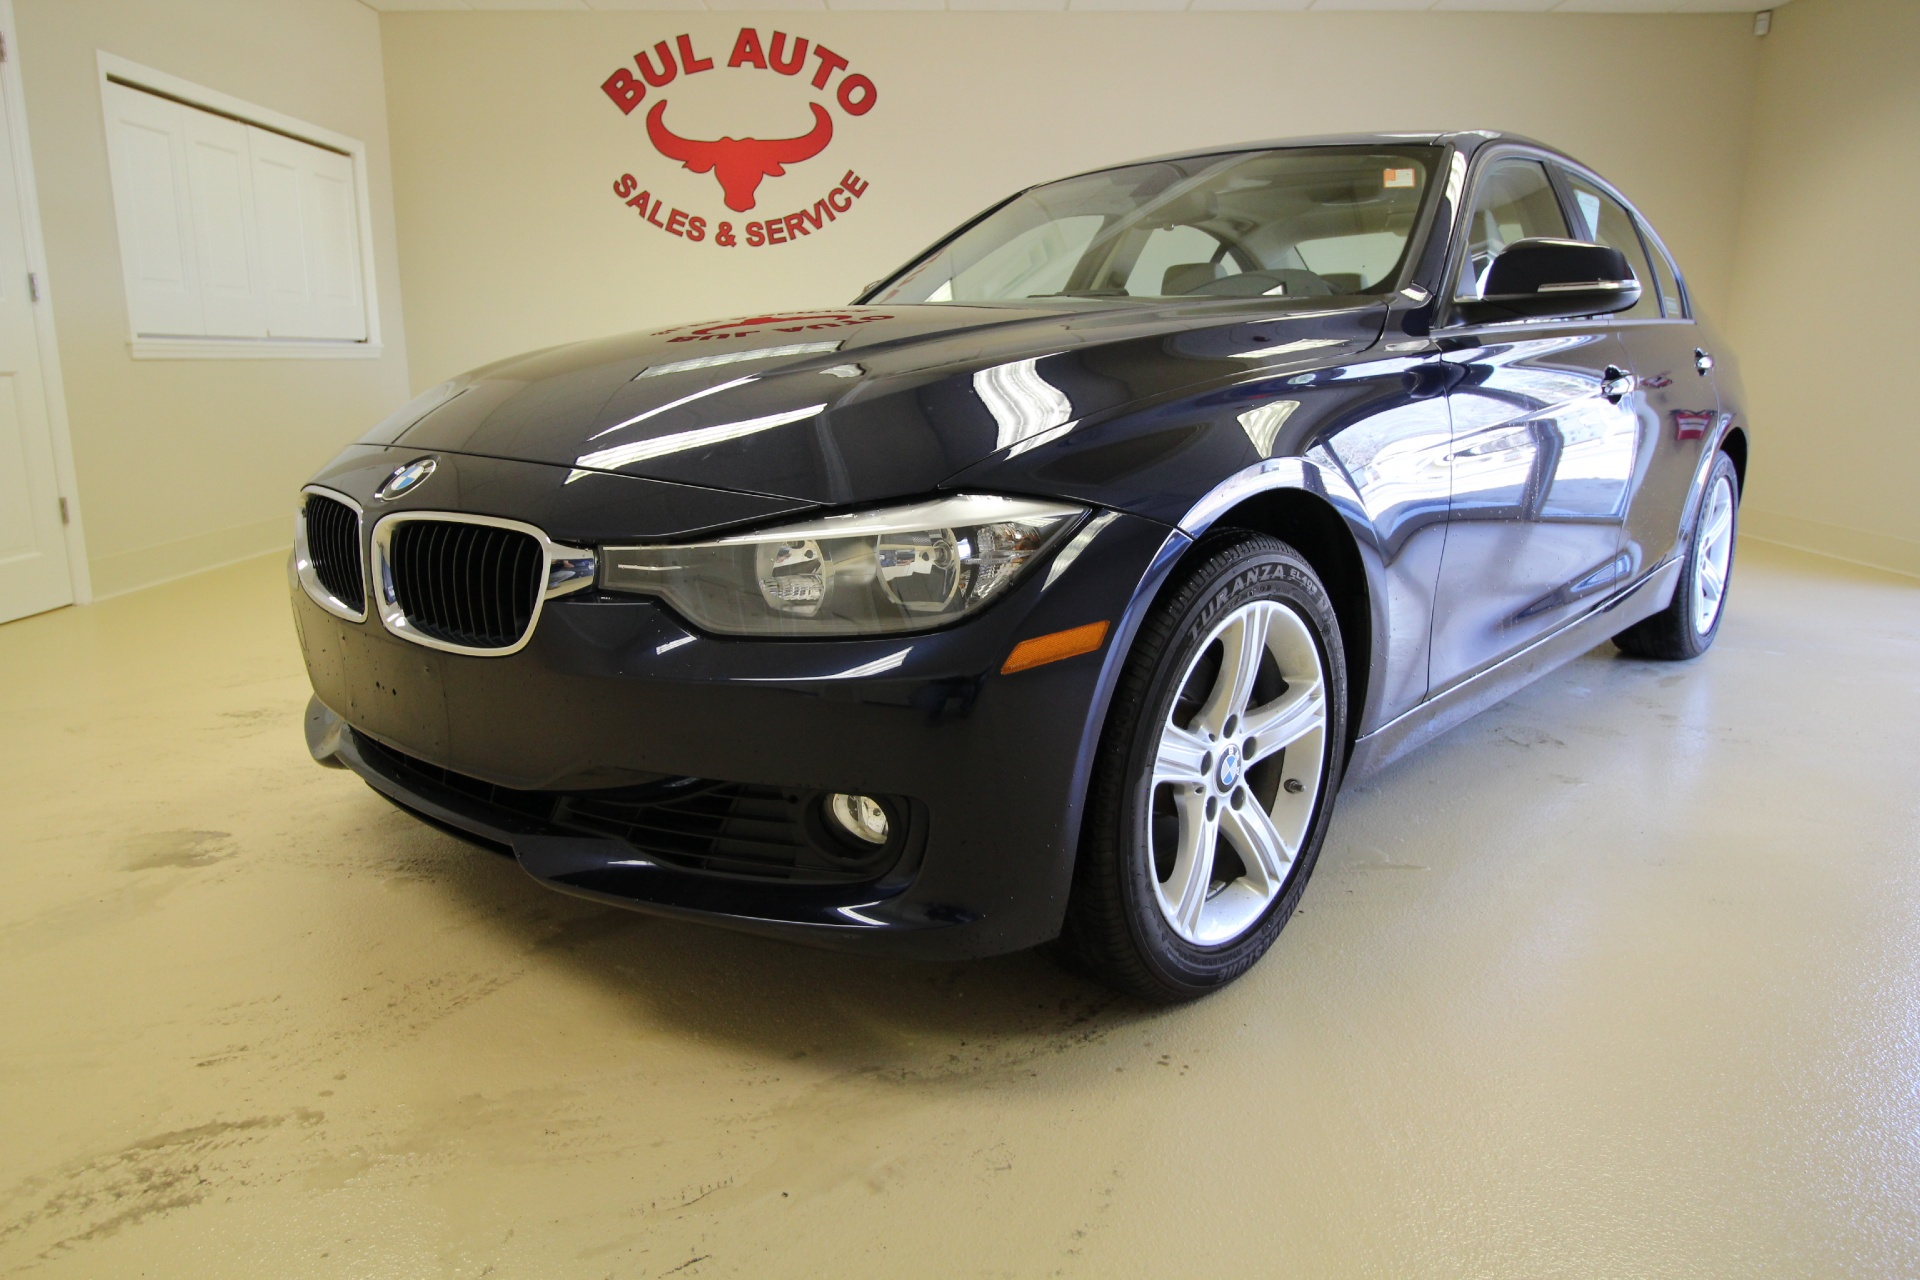 2013 bmw 3 series 328i xdrive awd like new low miles stock 15126 for sale near albany ny ny. Black Bedroom Furniture Sets. Home Design Ideas